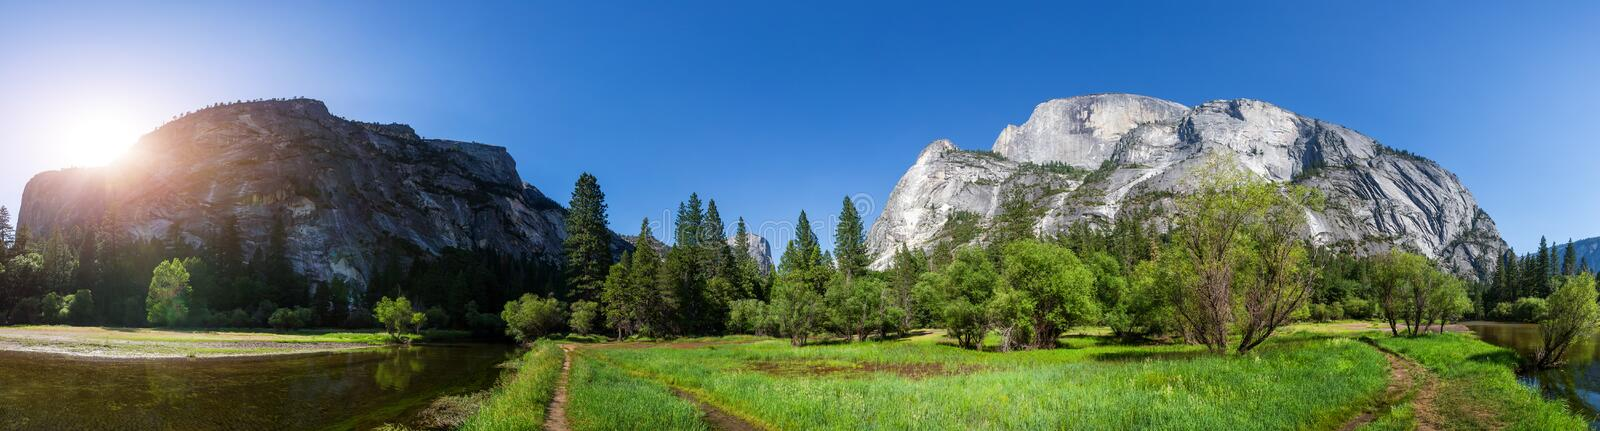 River surrounded by rocky mountains panoramic view. At Yosemite National Park, California USA stock photos